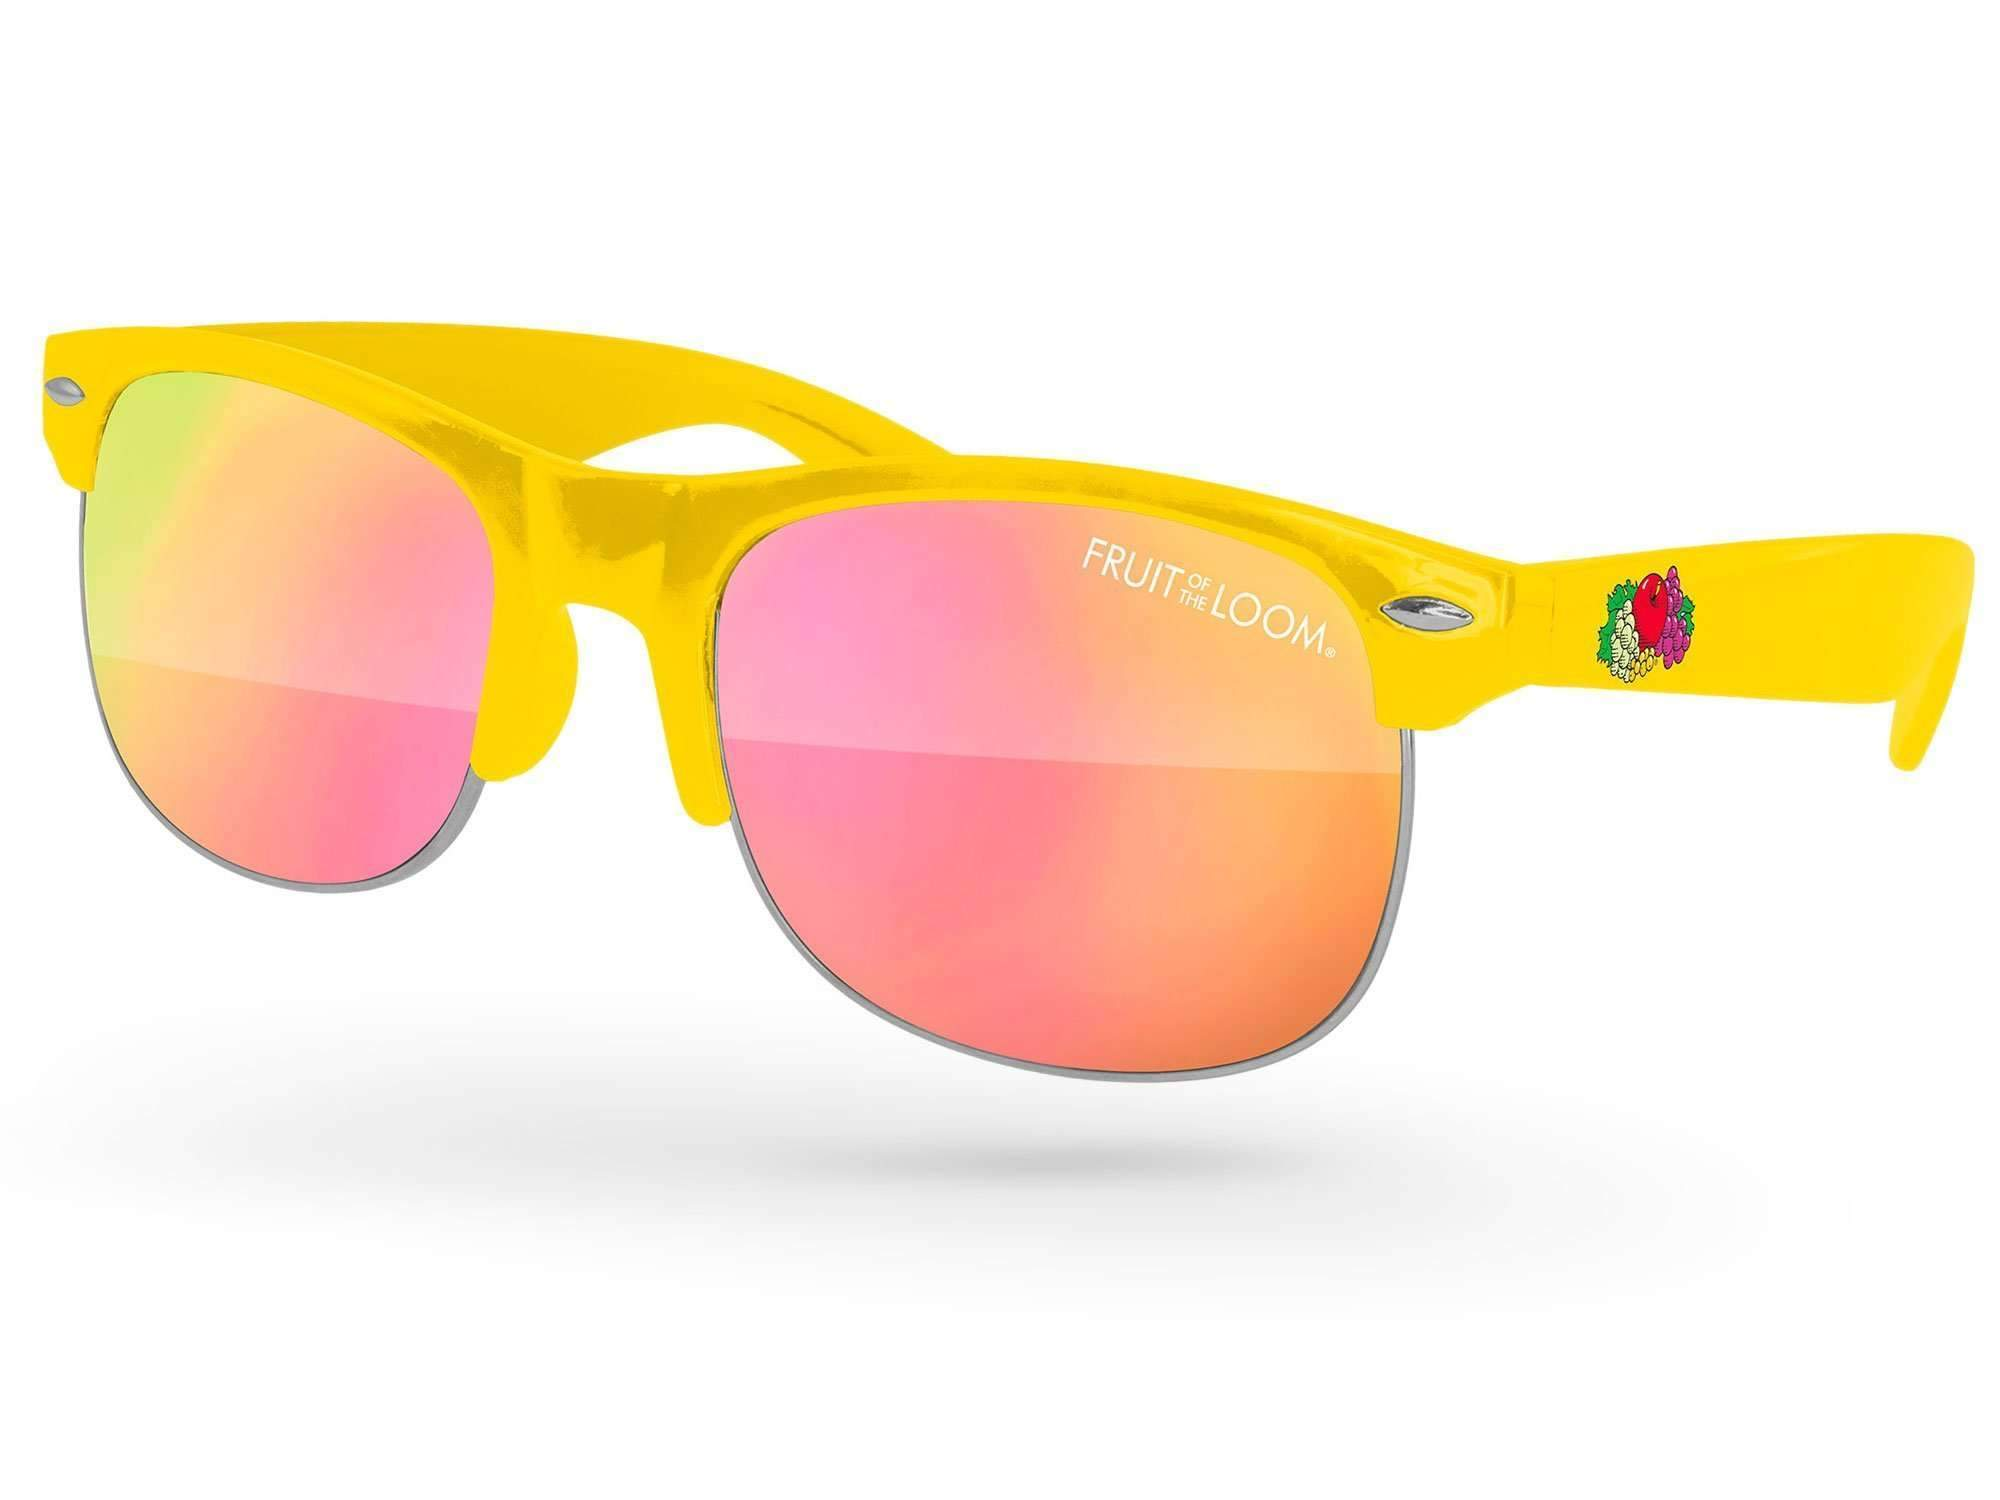 Club Mirror Promotional Sunglasses w/ 1-color lens imprint & full-color temple imprint